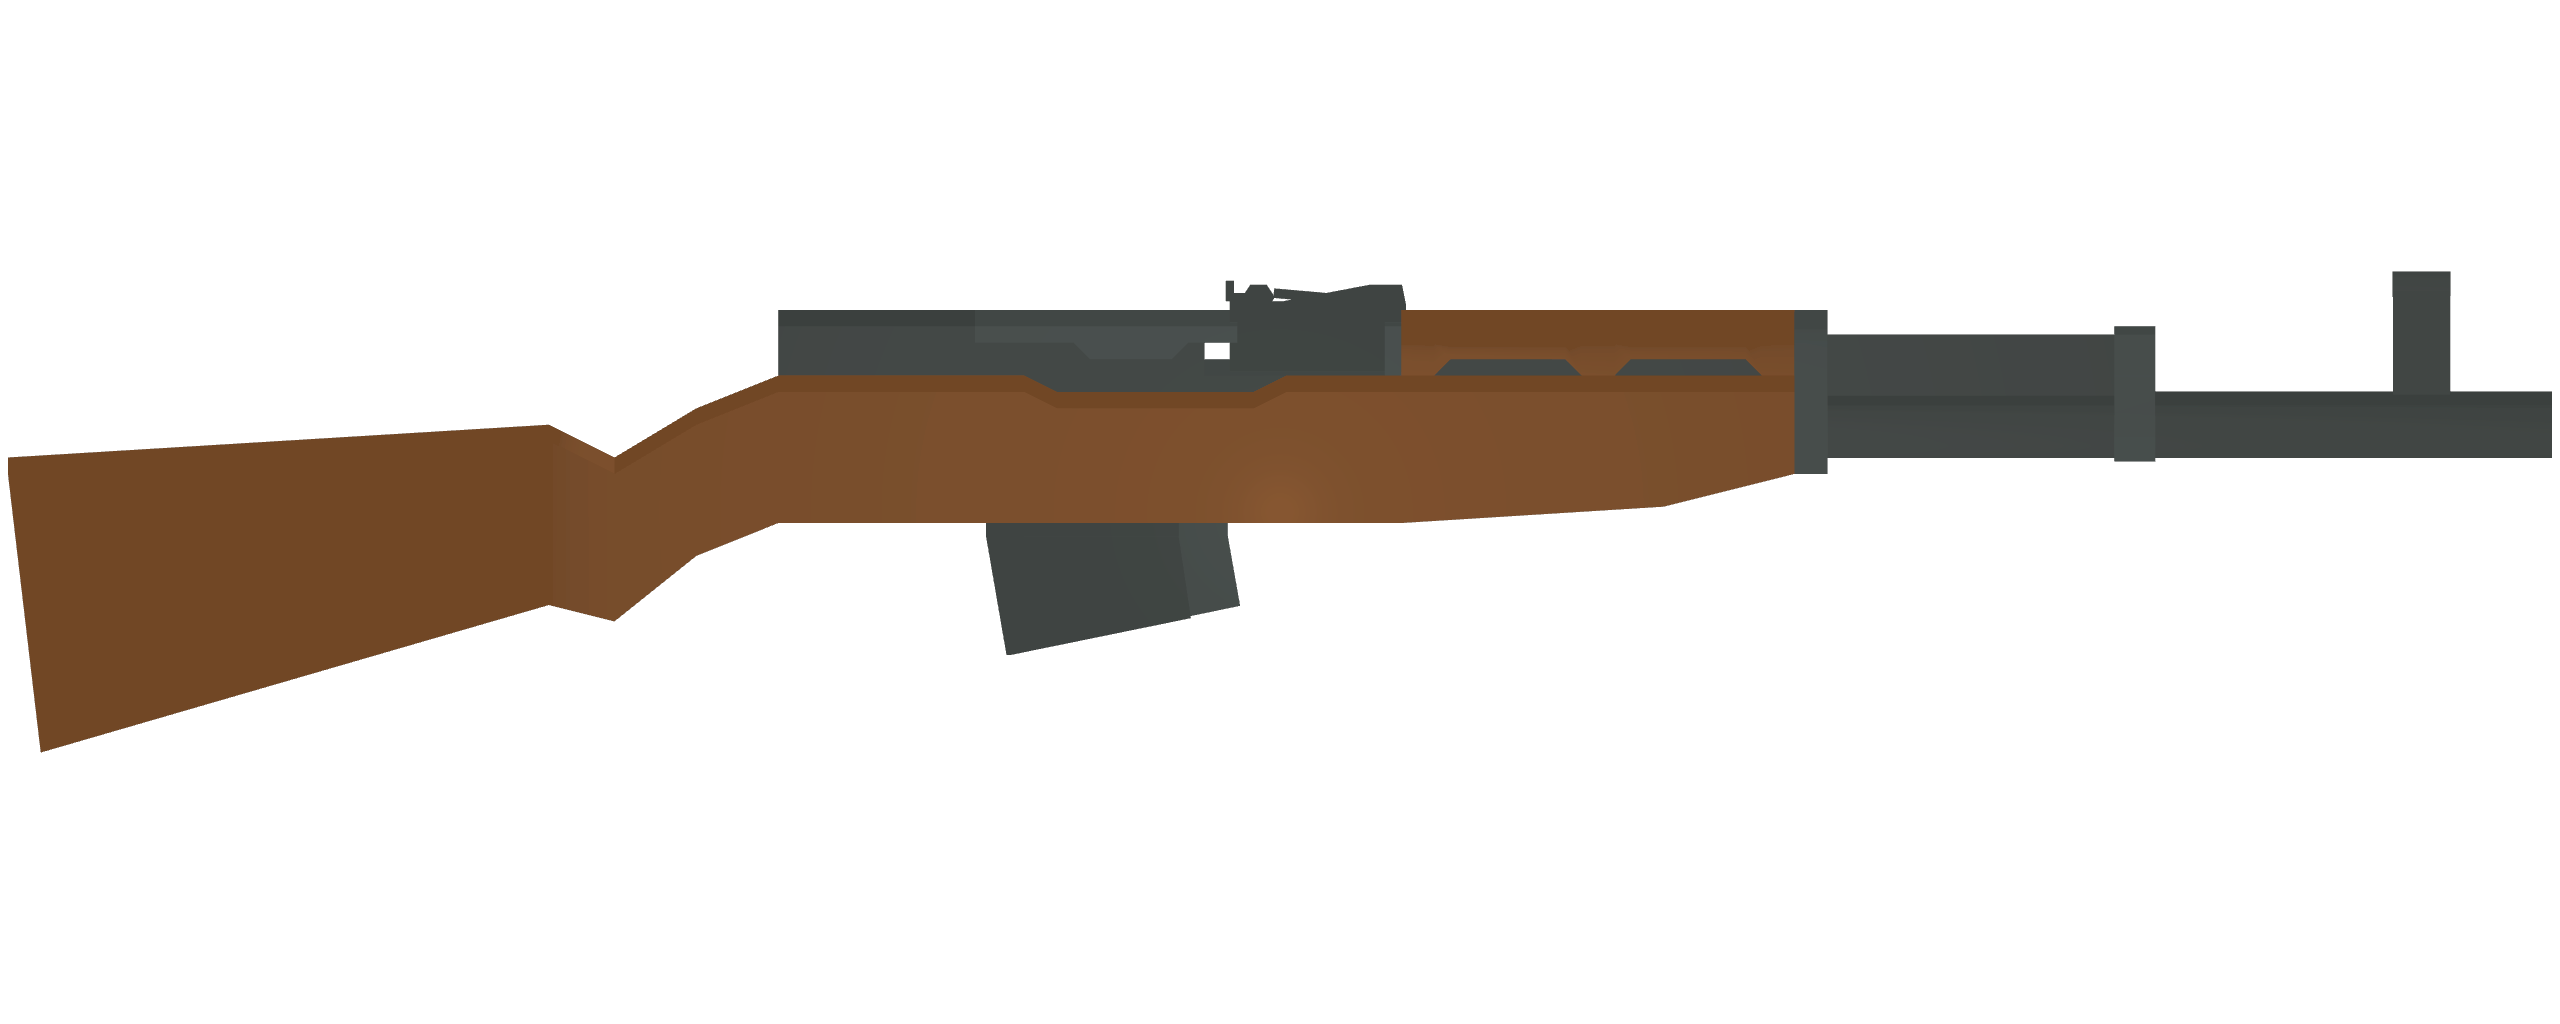 Unturned - All Weapons ID's for Uncreated Warfare Mods - Russian Weapons - EE8AF67